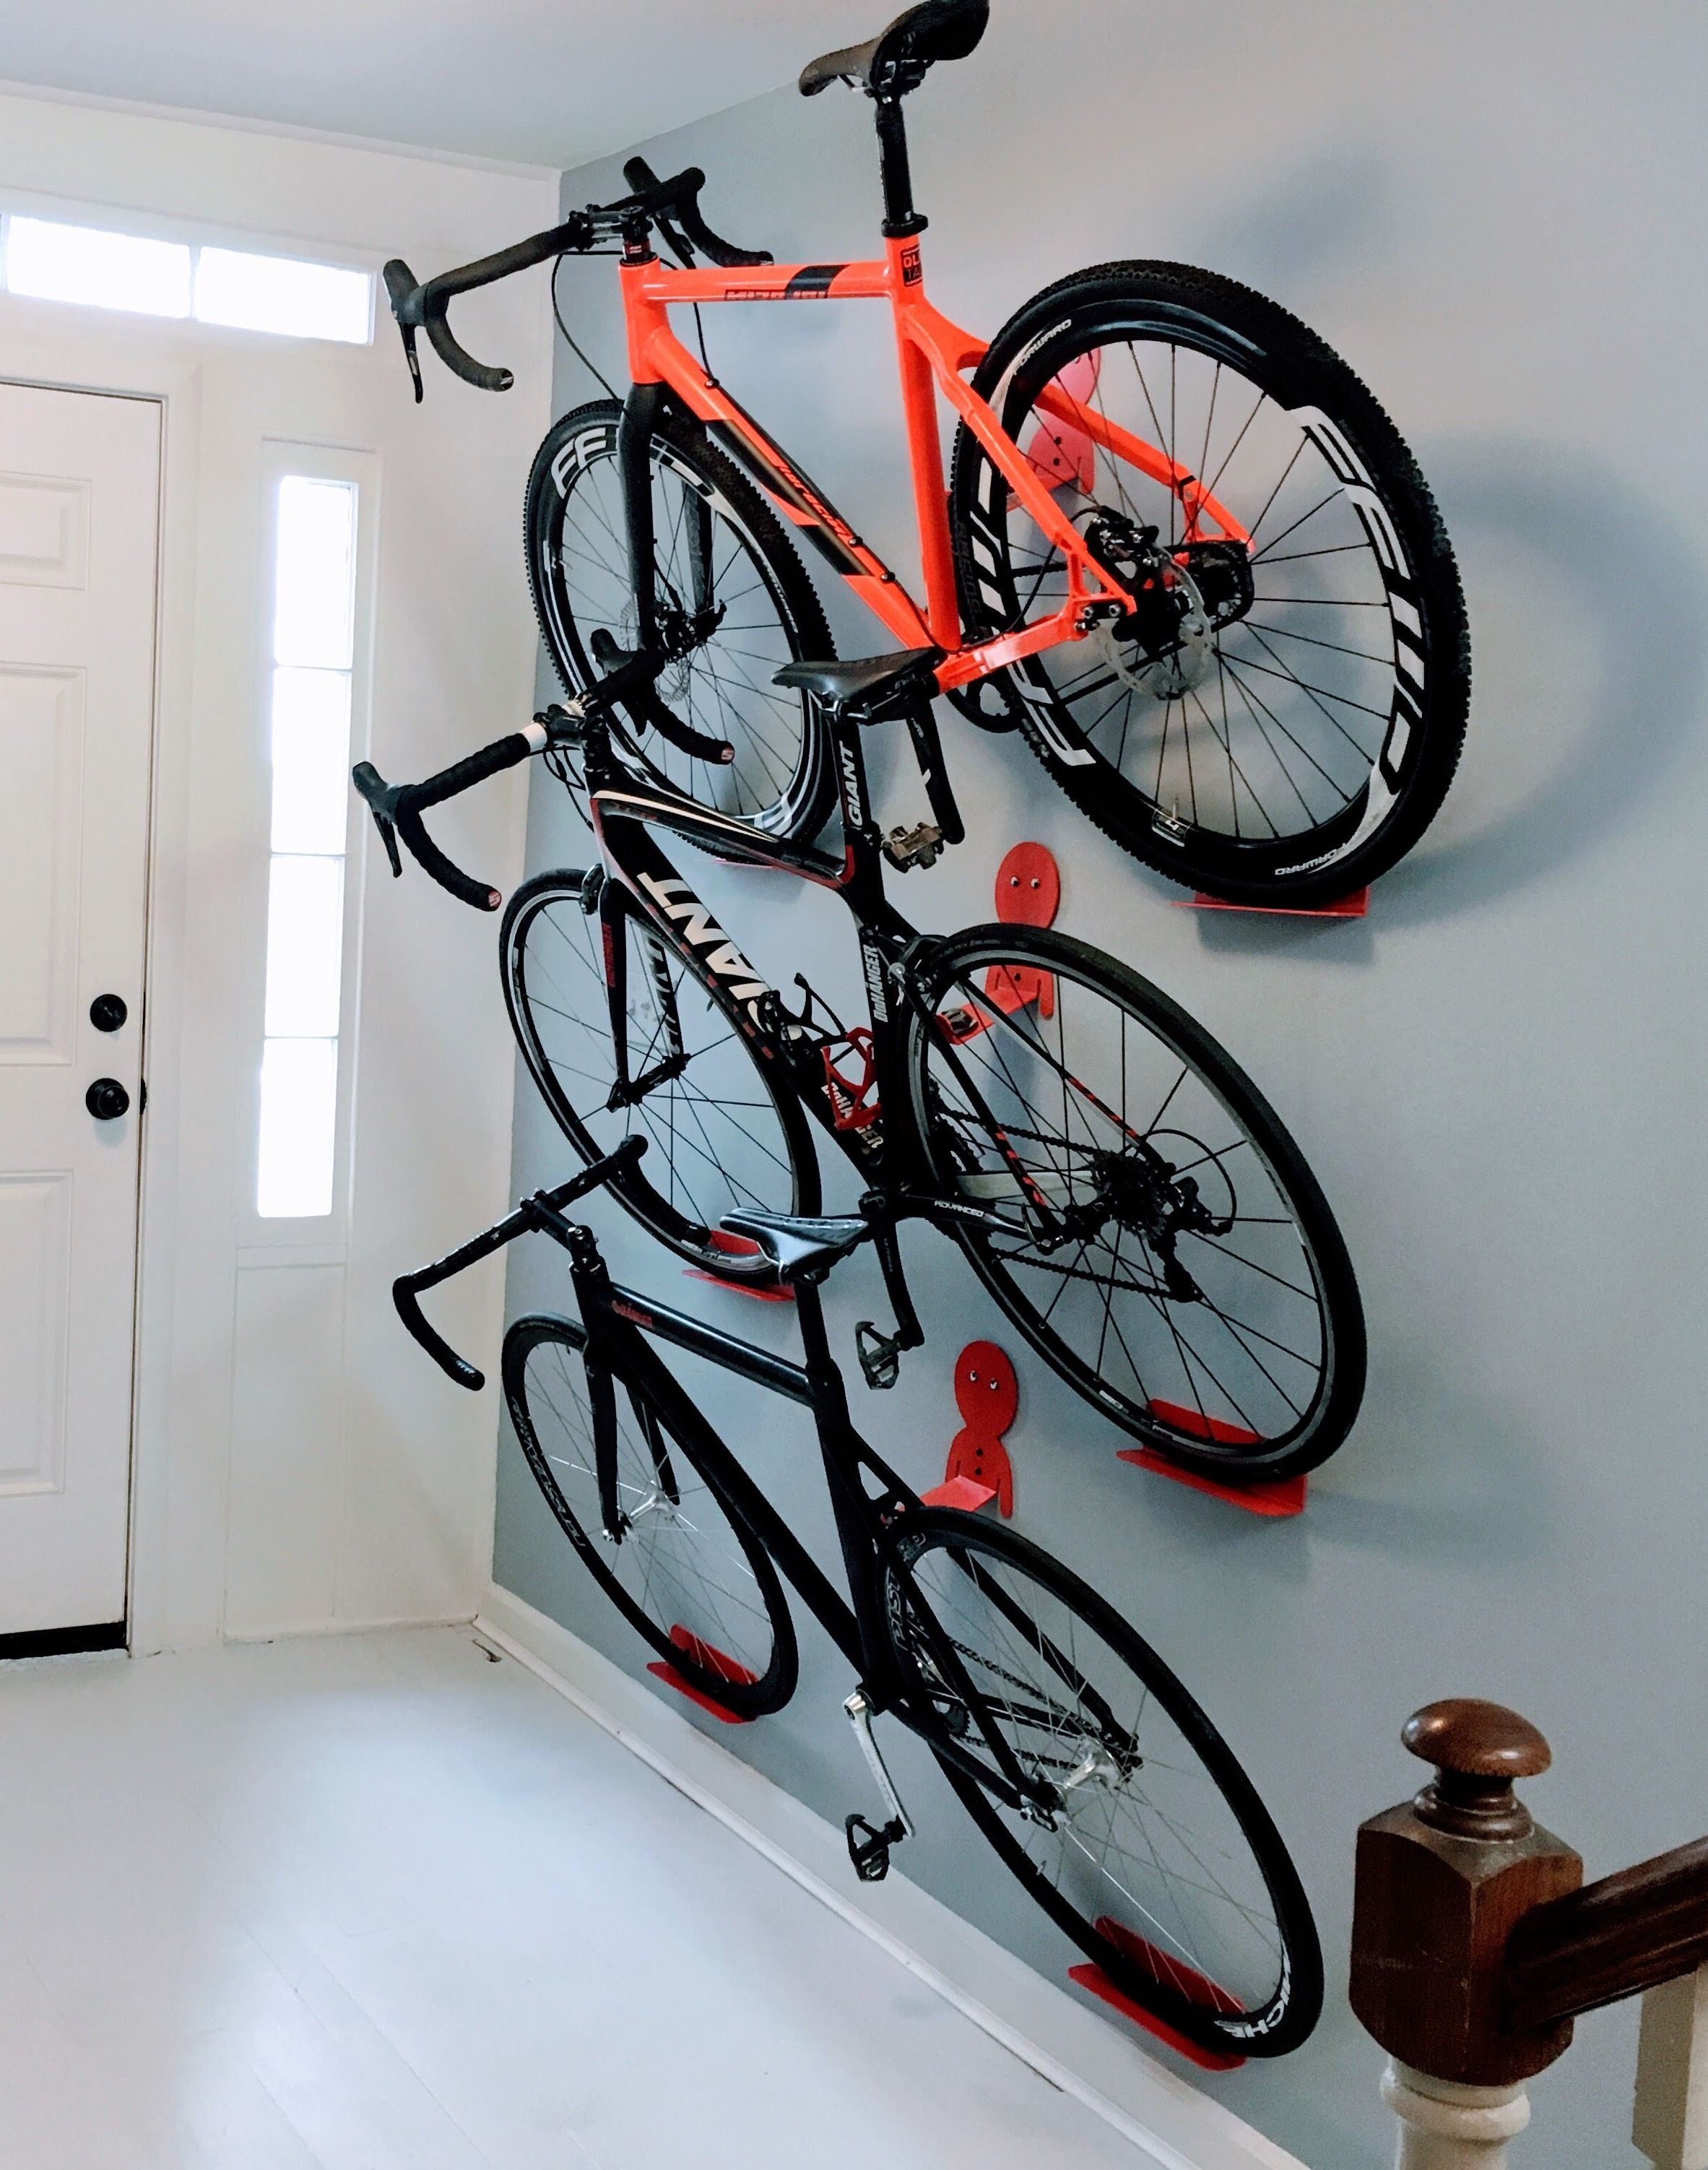 Uncategorized Leaning Bike Rack multiple bikes hanging rack system dahanger dan pedal hook hook